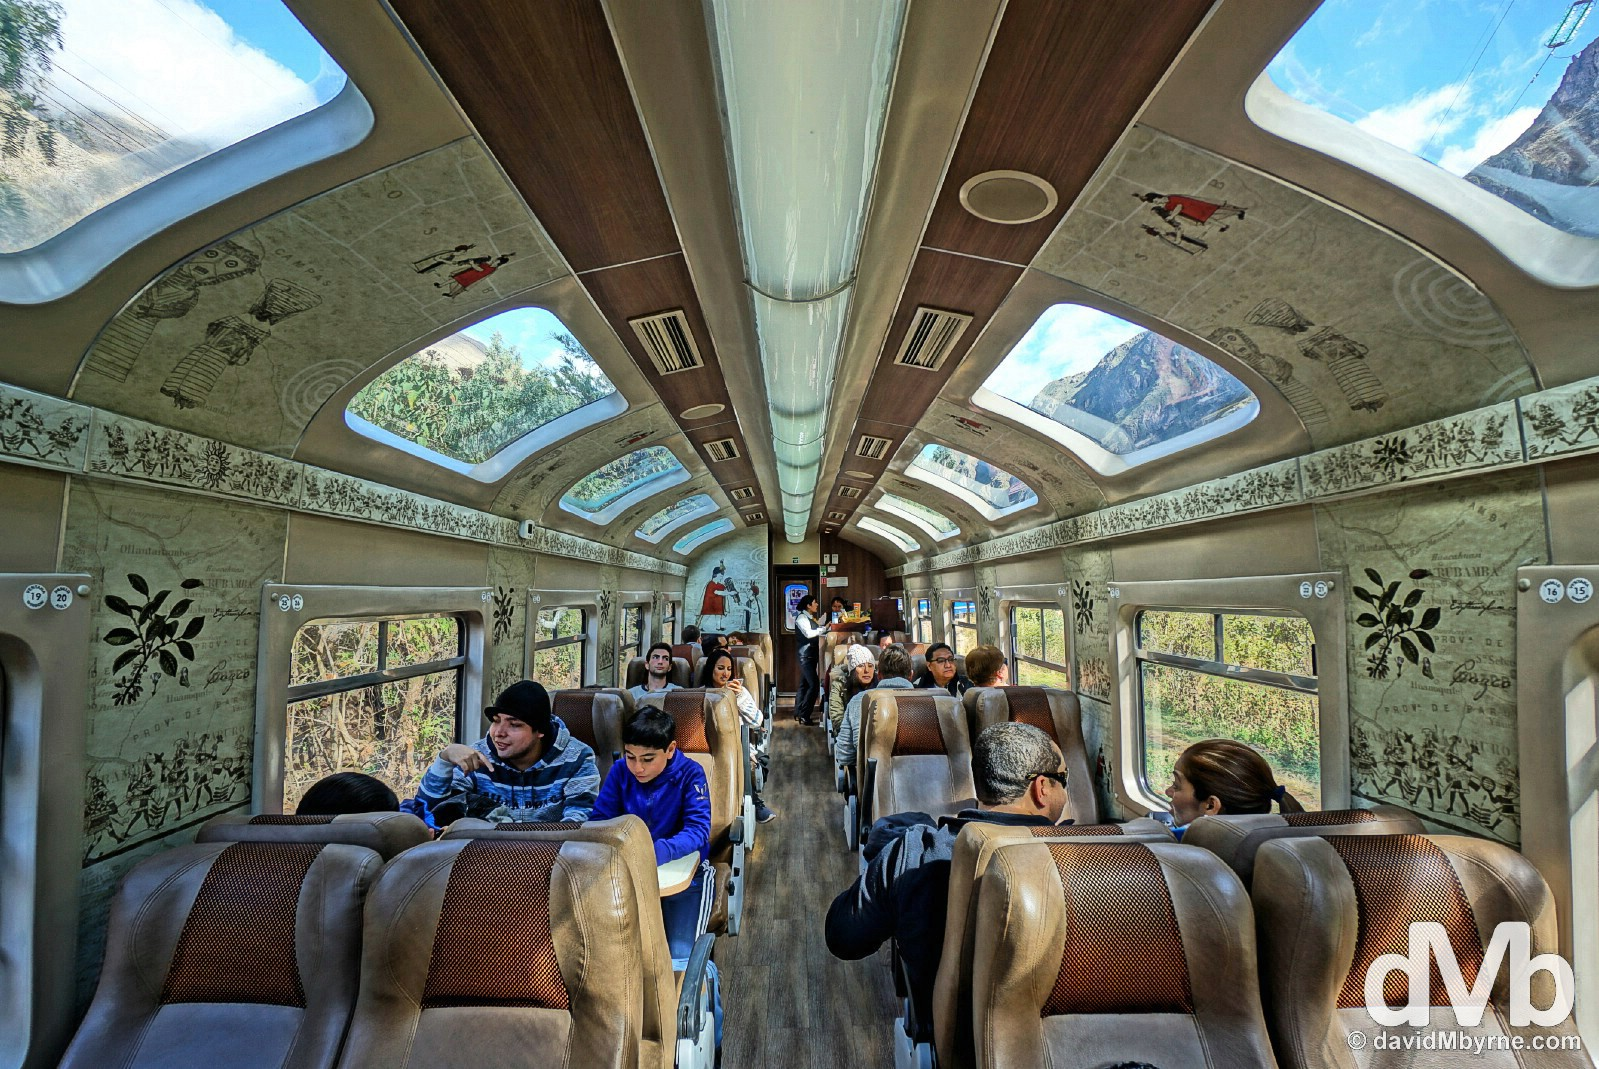 Carriage D of Peru Rail's 07:42 Expedition service from Cusco to Machu Picchu Peublo/Aguas Calientes, Peru. August 14, 2015.